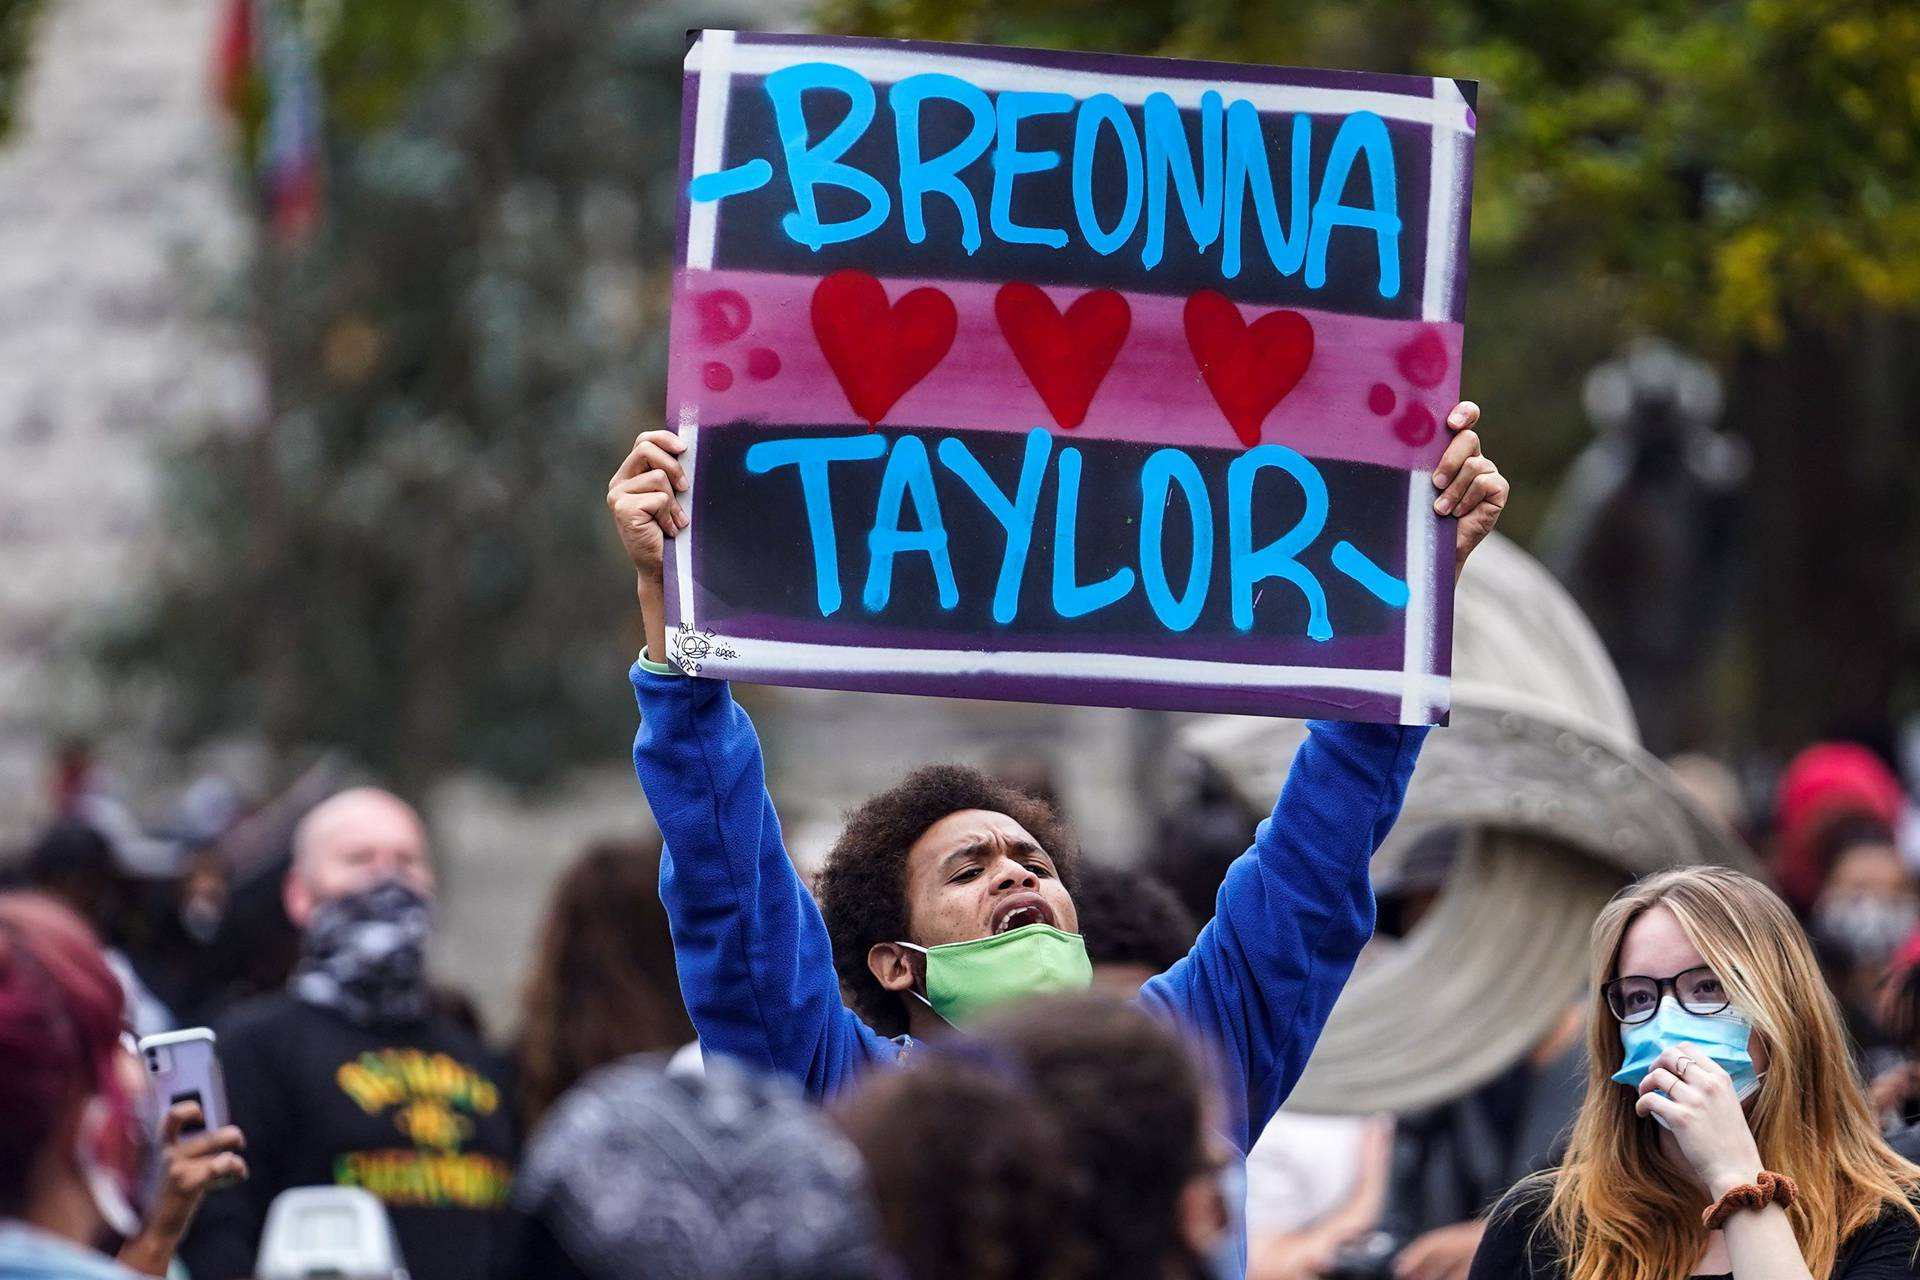 People react to the grand jury finding in the Breonna Taylor shooting